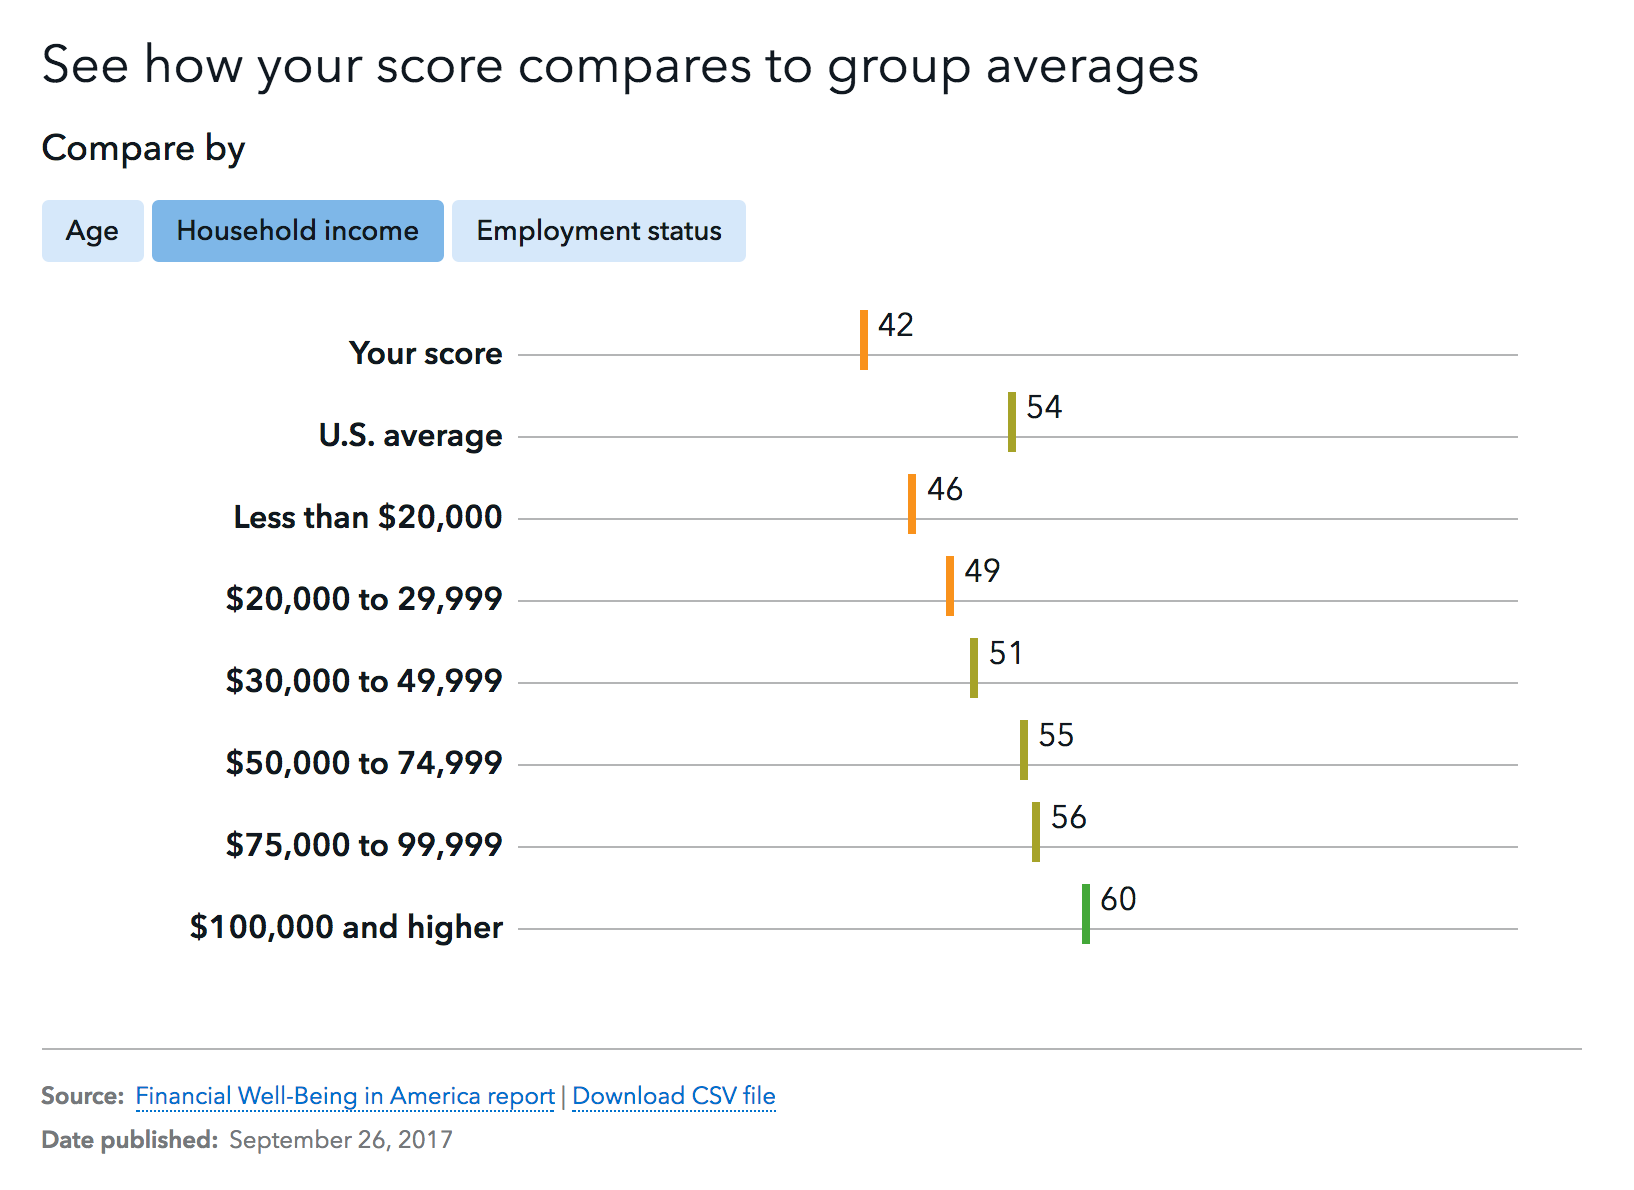 Chart showing average financial well-being scores of people with different household incomes